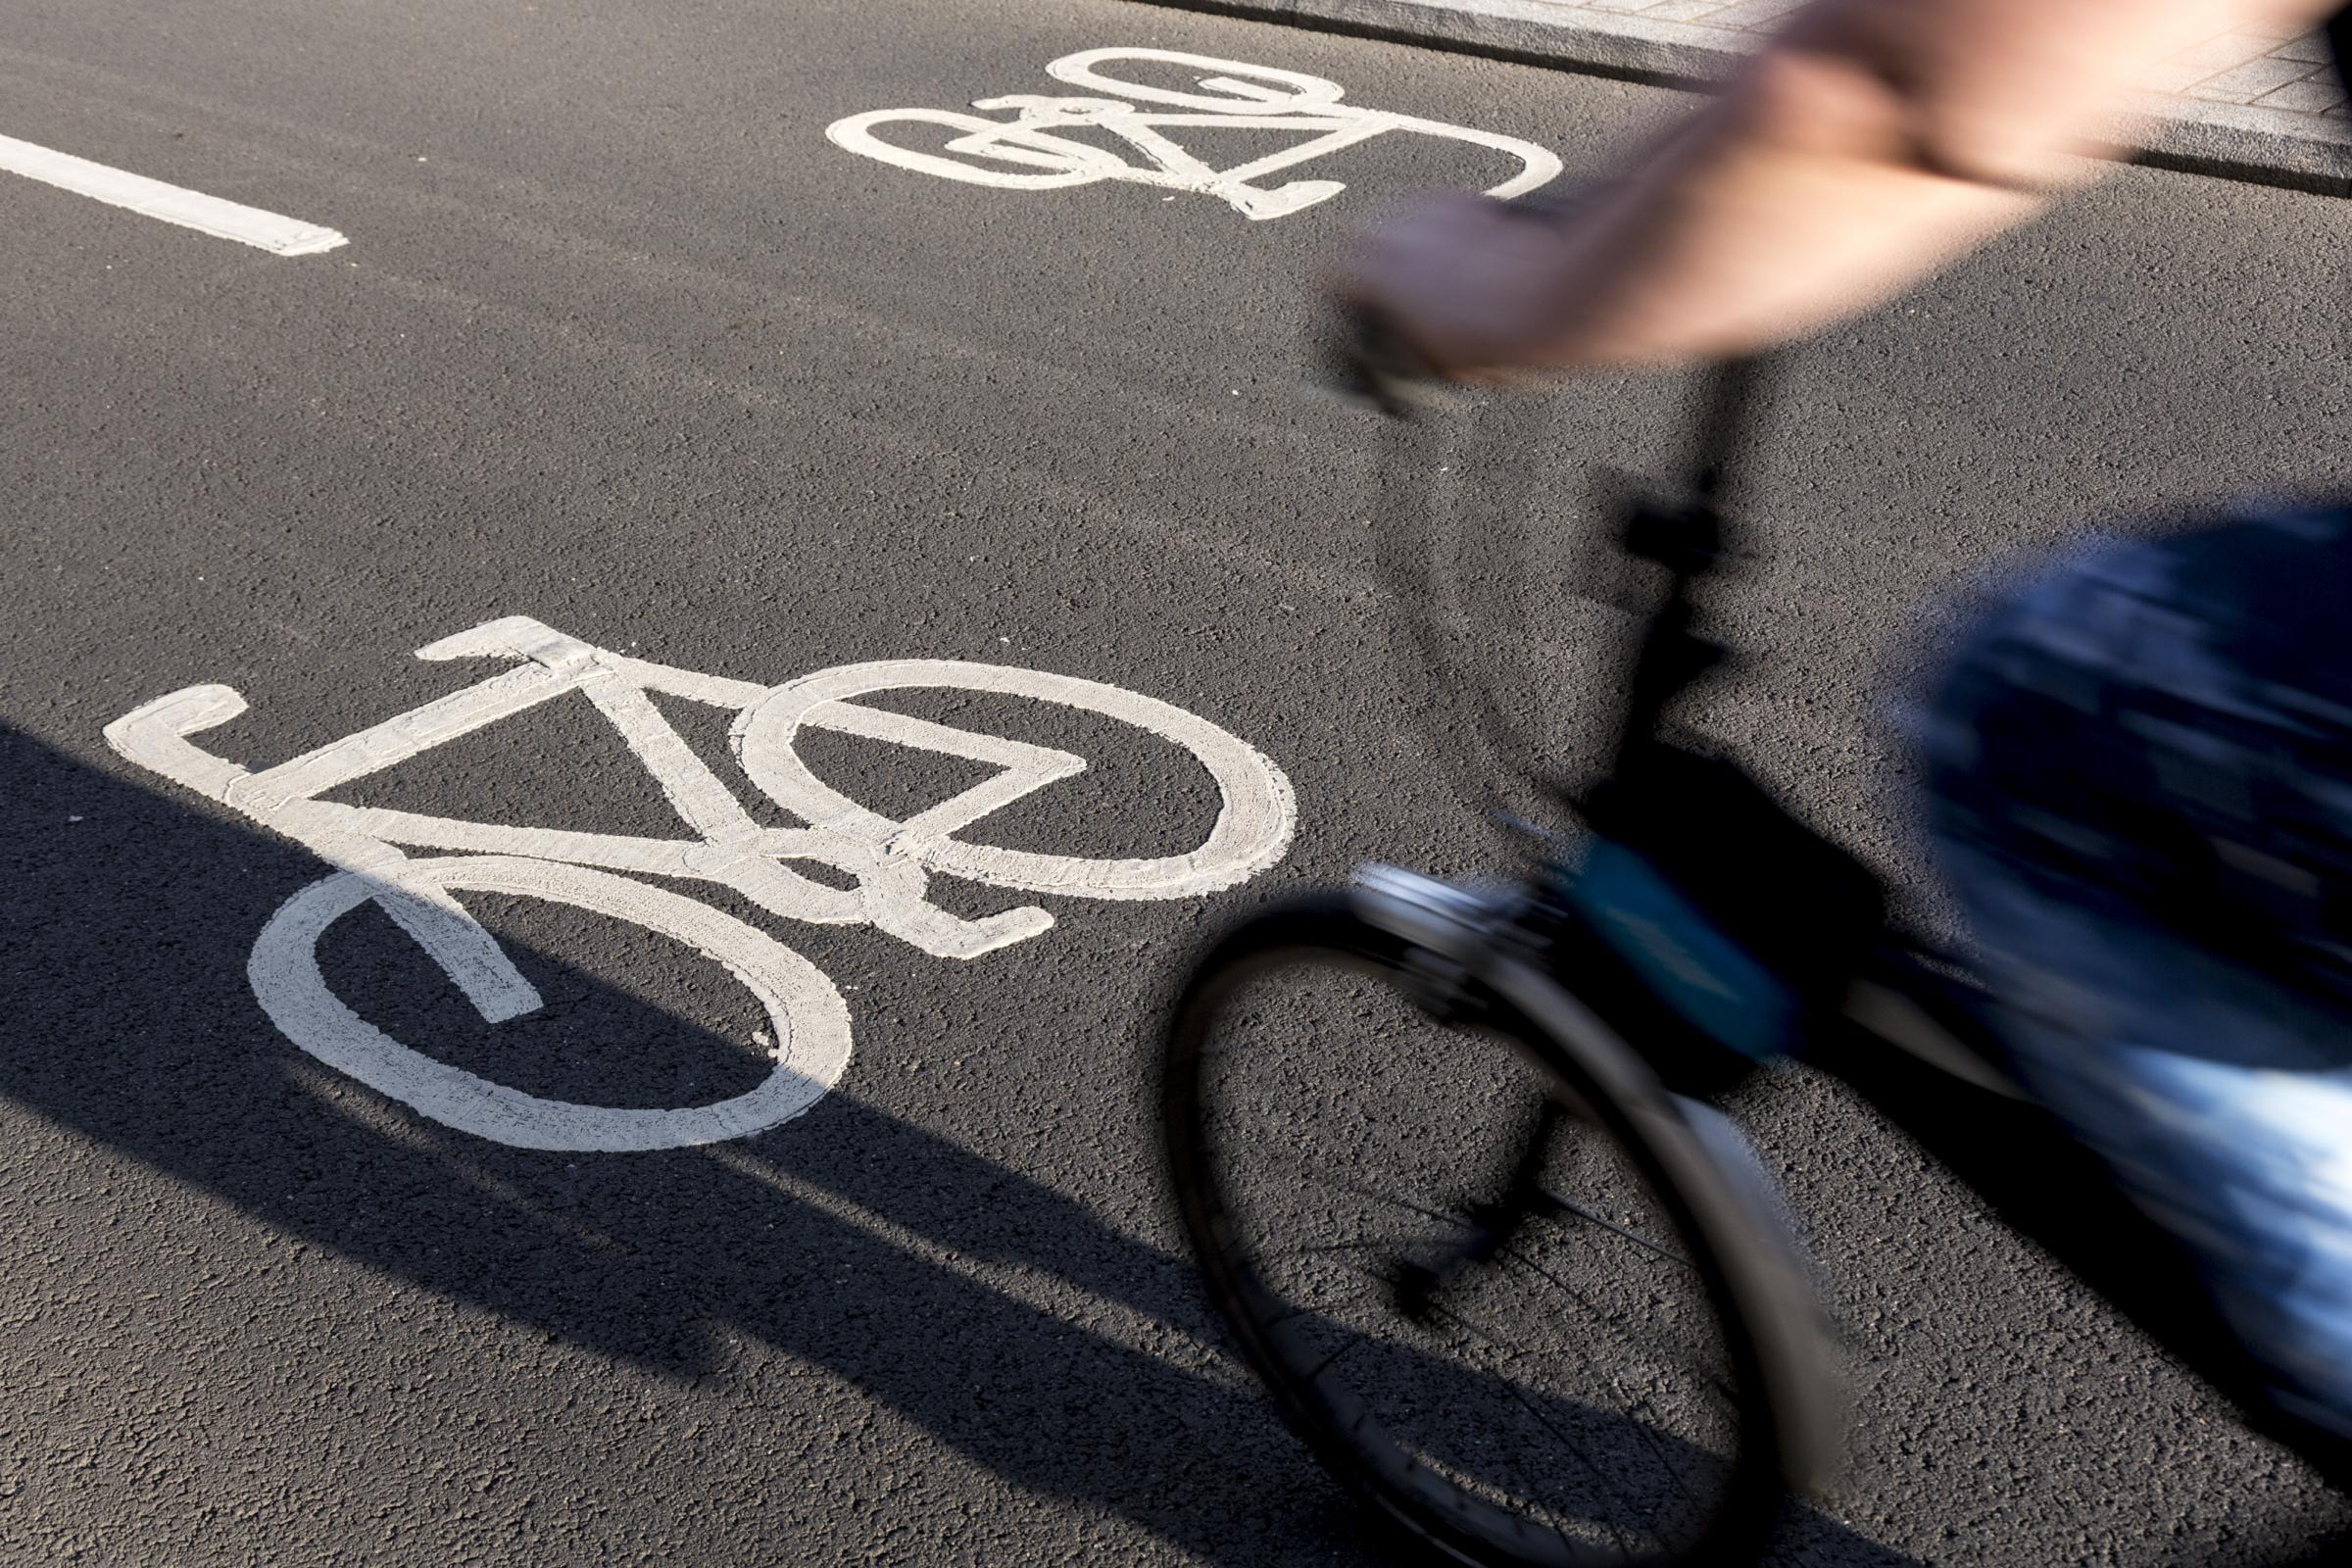 Mark Dawes believes poorly-designed cycle lanes are dangerous for pedestrians and cyclists